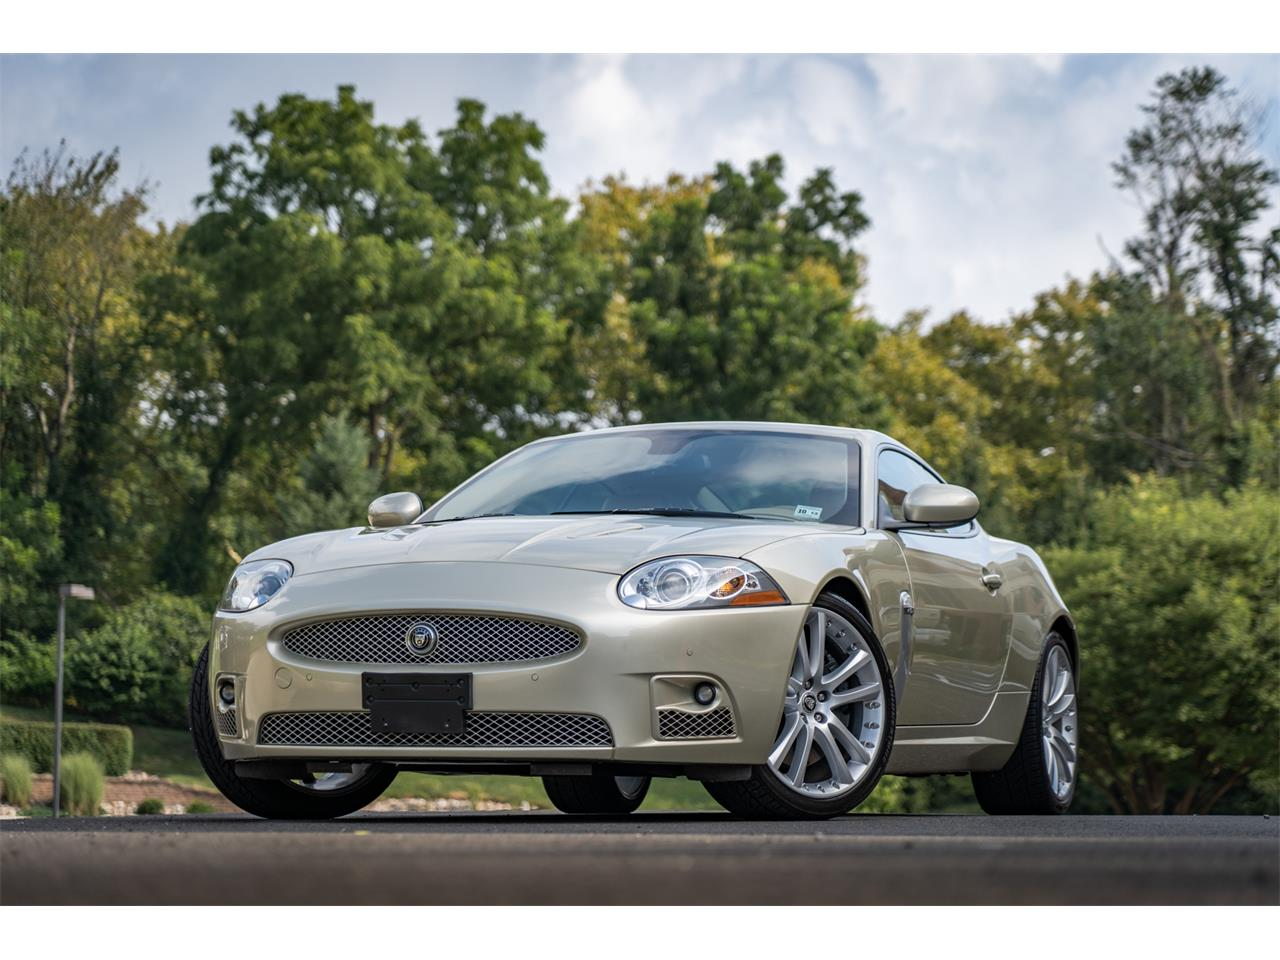 Large Picture of 2008 Jaguar XKR located in Doylestown Pennsylvania Auction Vehicle Offered by Bring A Trailer - QQG3